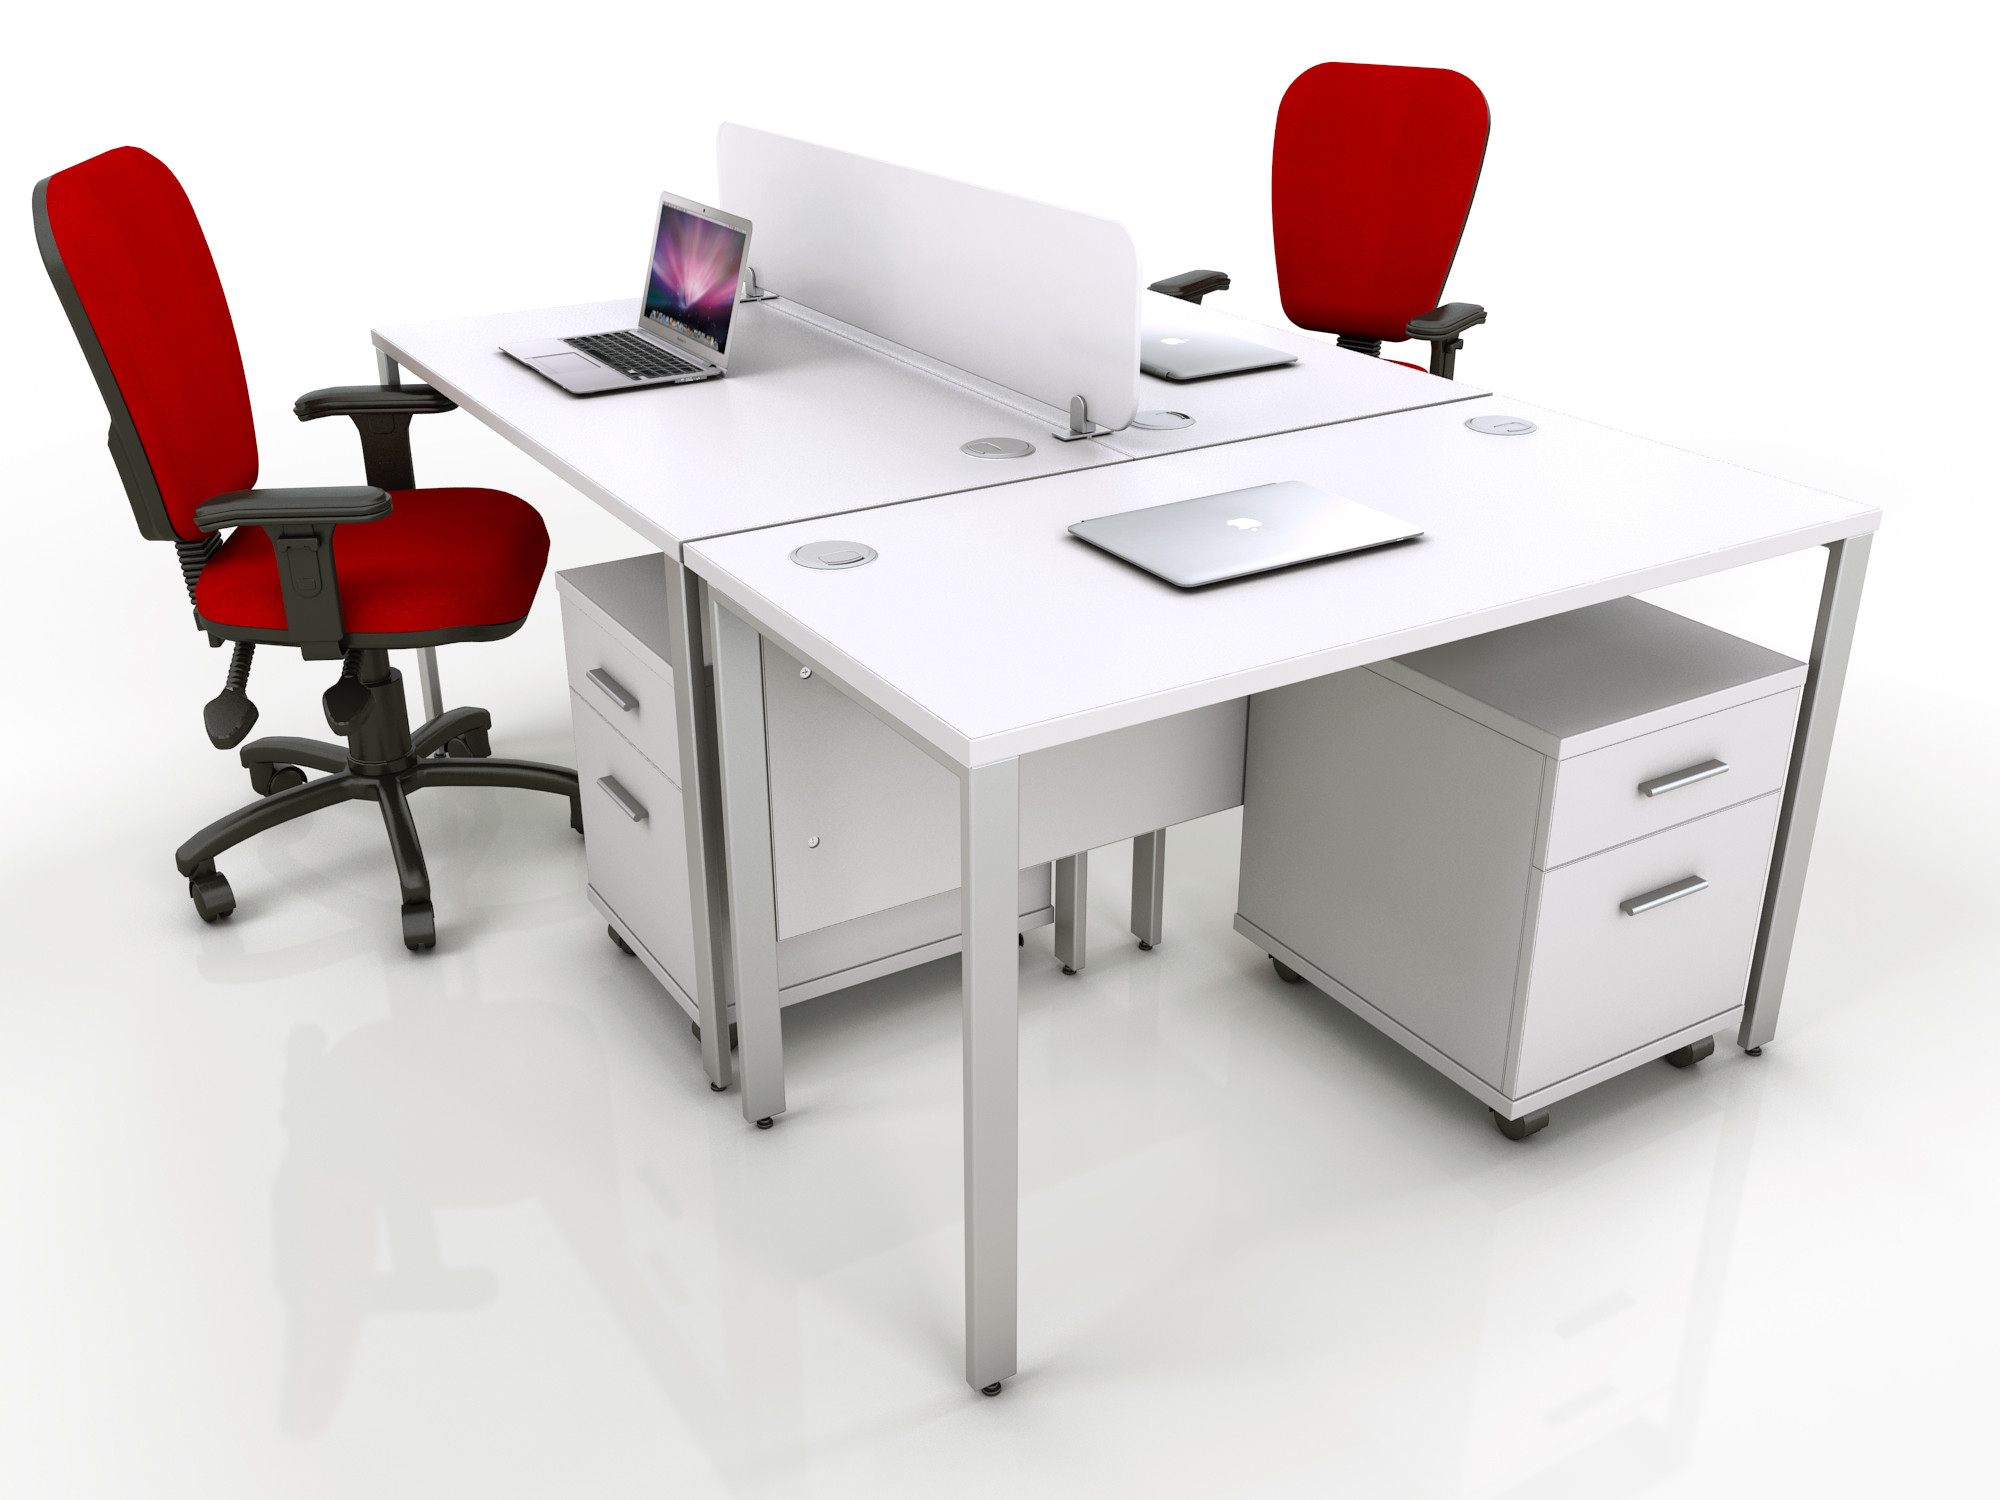 Best ideas about Wholesale Office Furniture . Save or Pin Wholesale fice Furniture Suppliers UK Icarus fice Now.